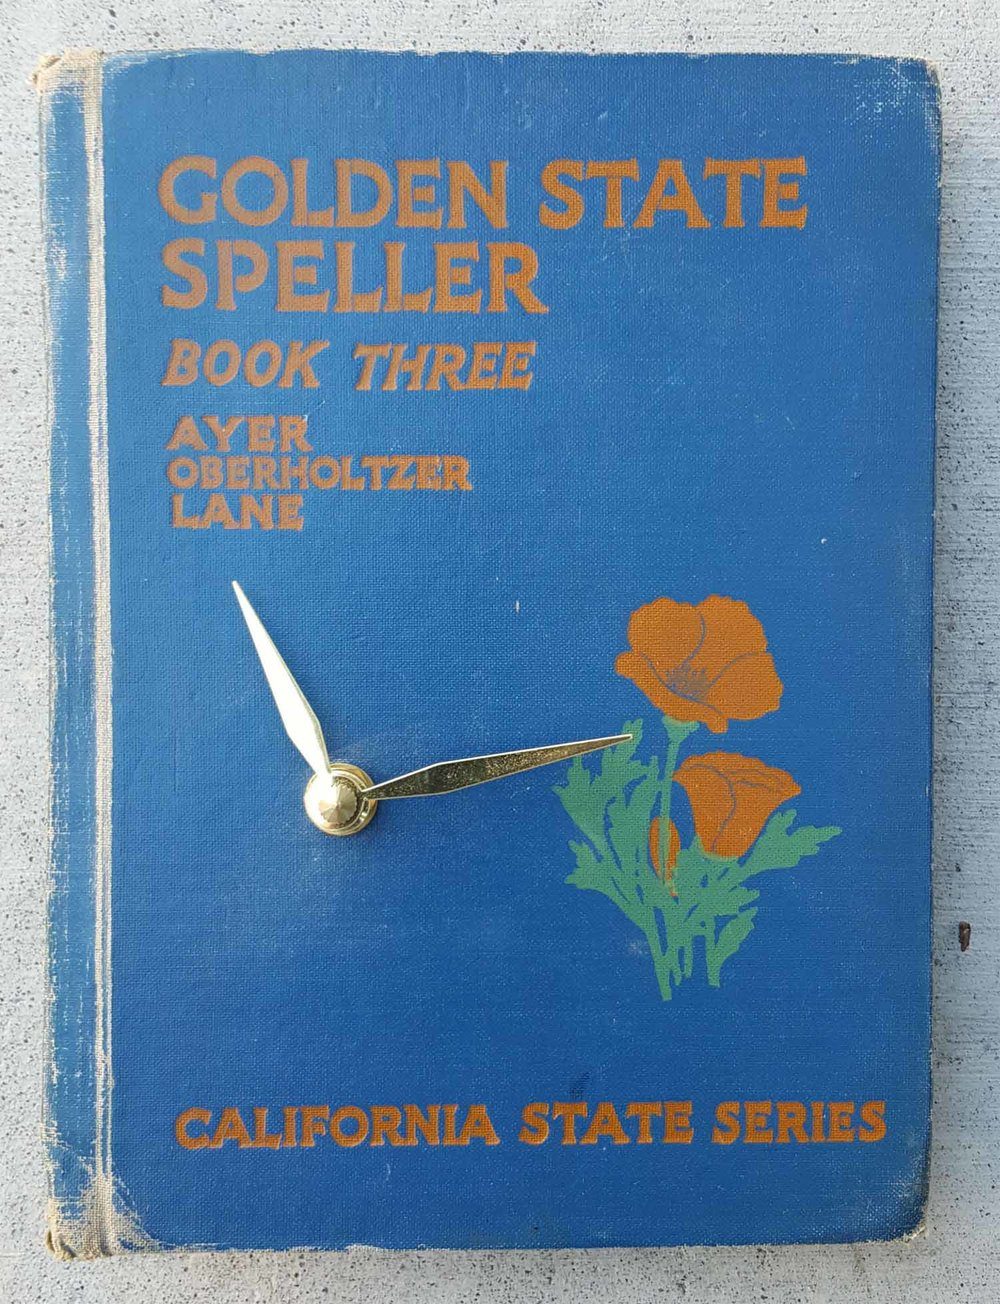 Golden State Speller Clock